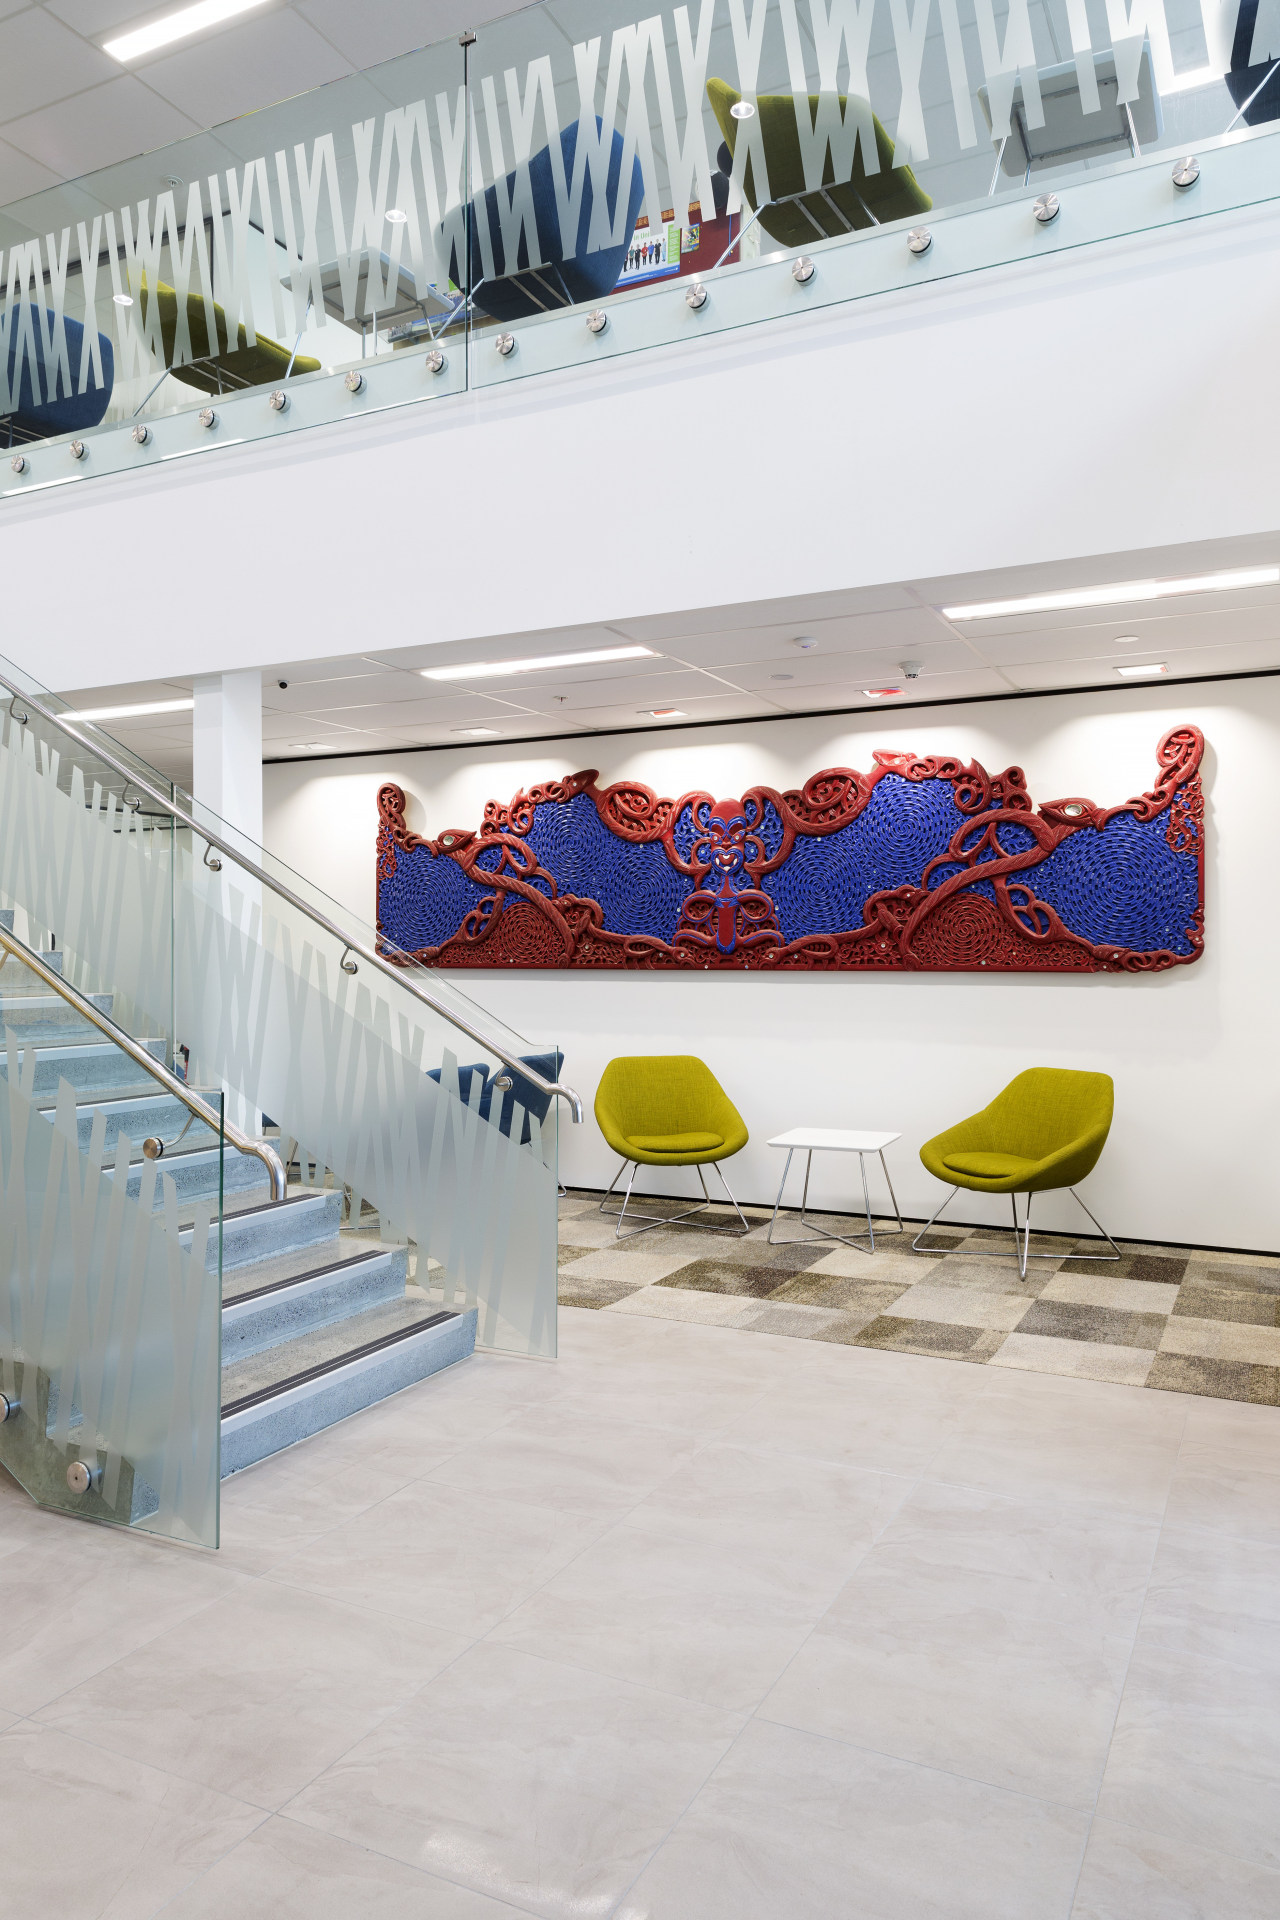 :This new maternity wing built and project-managed by floor, product design, gray